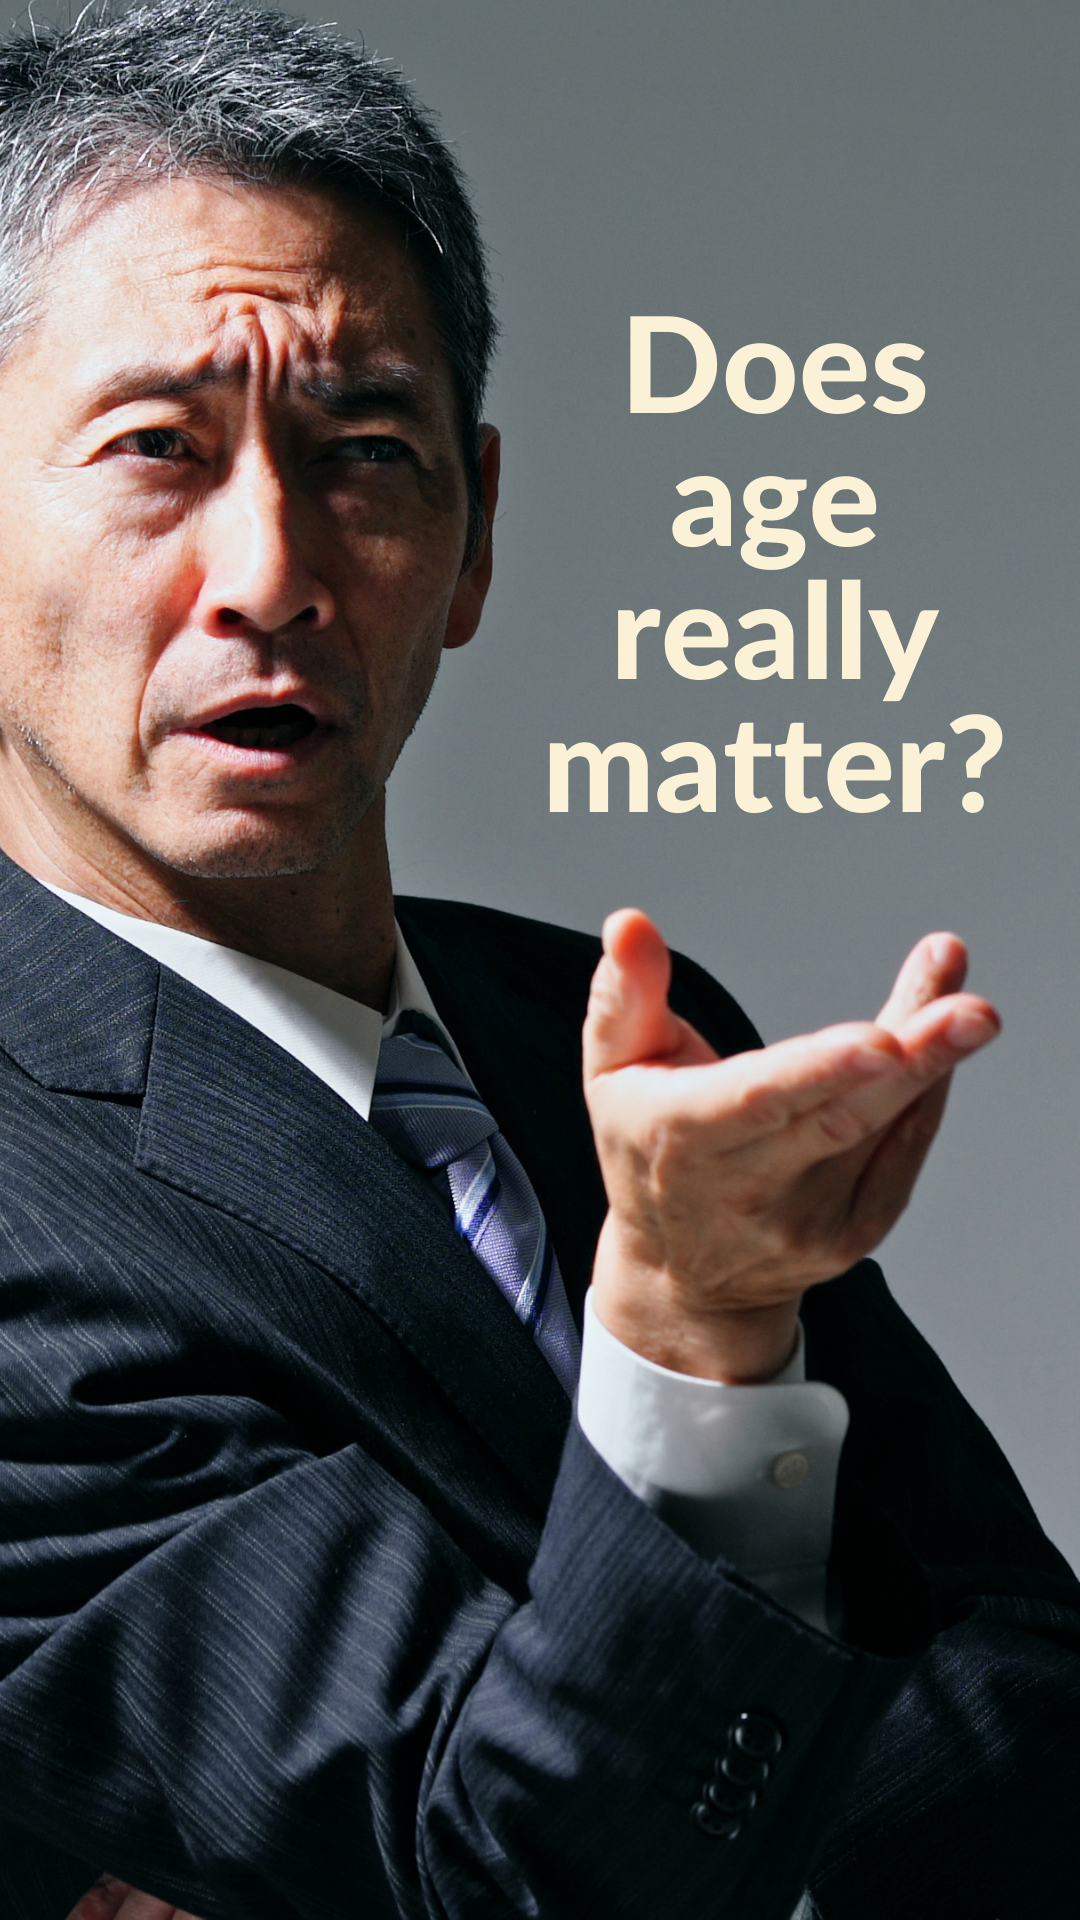 Does age really matter? Will being 50 years old deter people from hiring me?